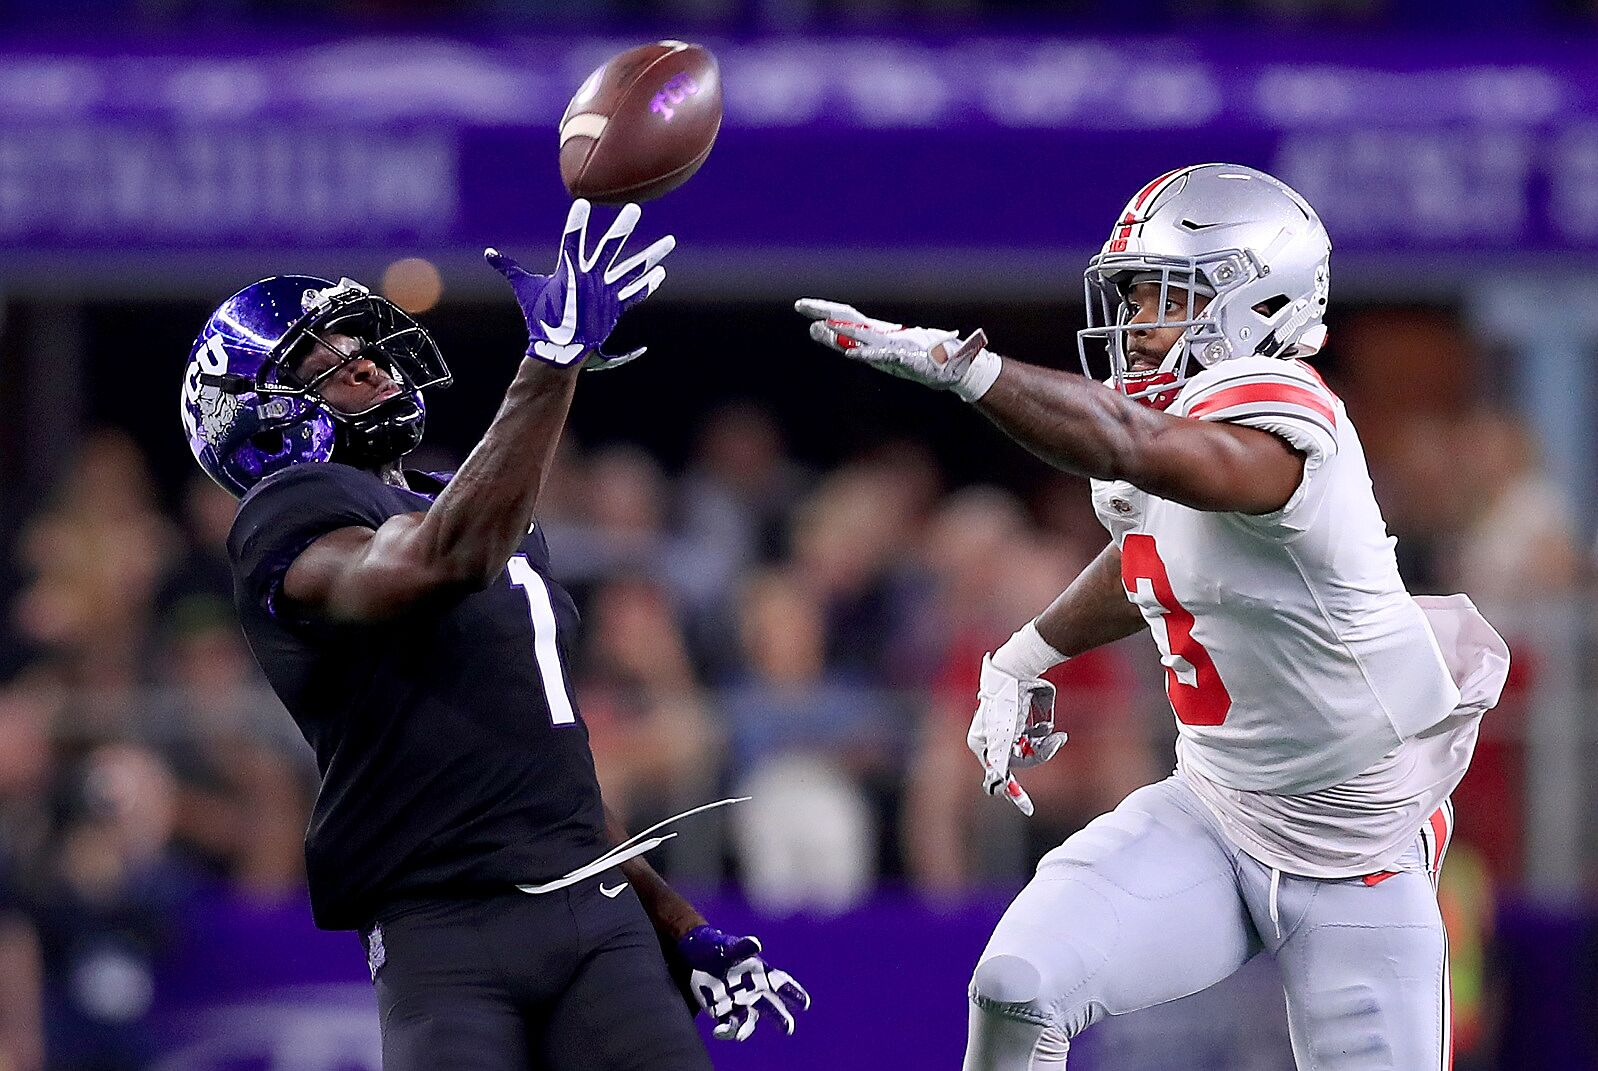 Fantasy Football: Top 7 rookie wide receivers for 2020 season